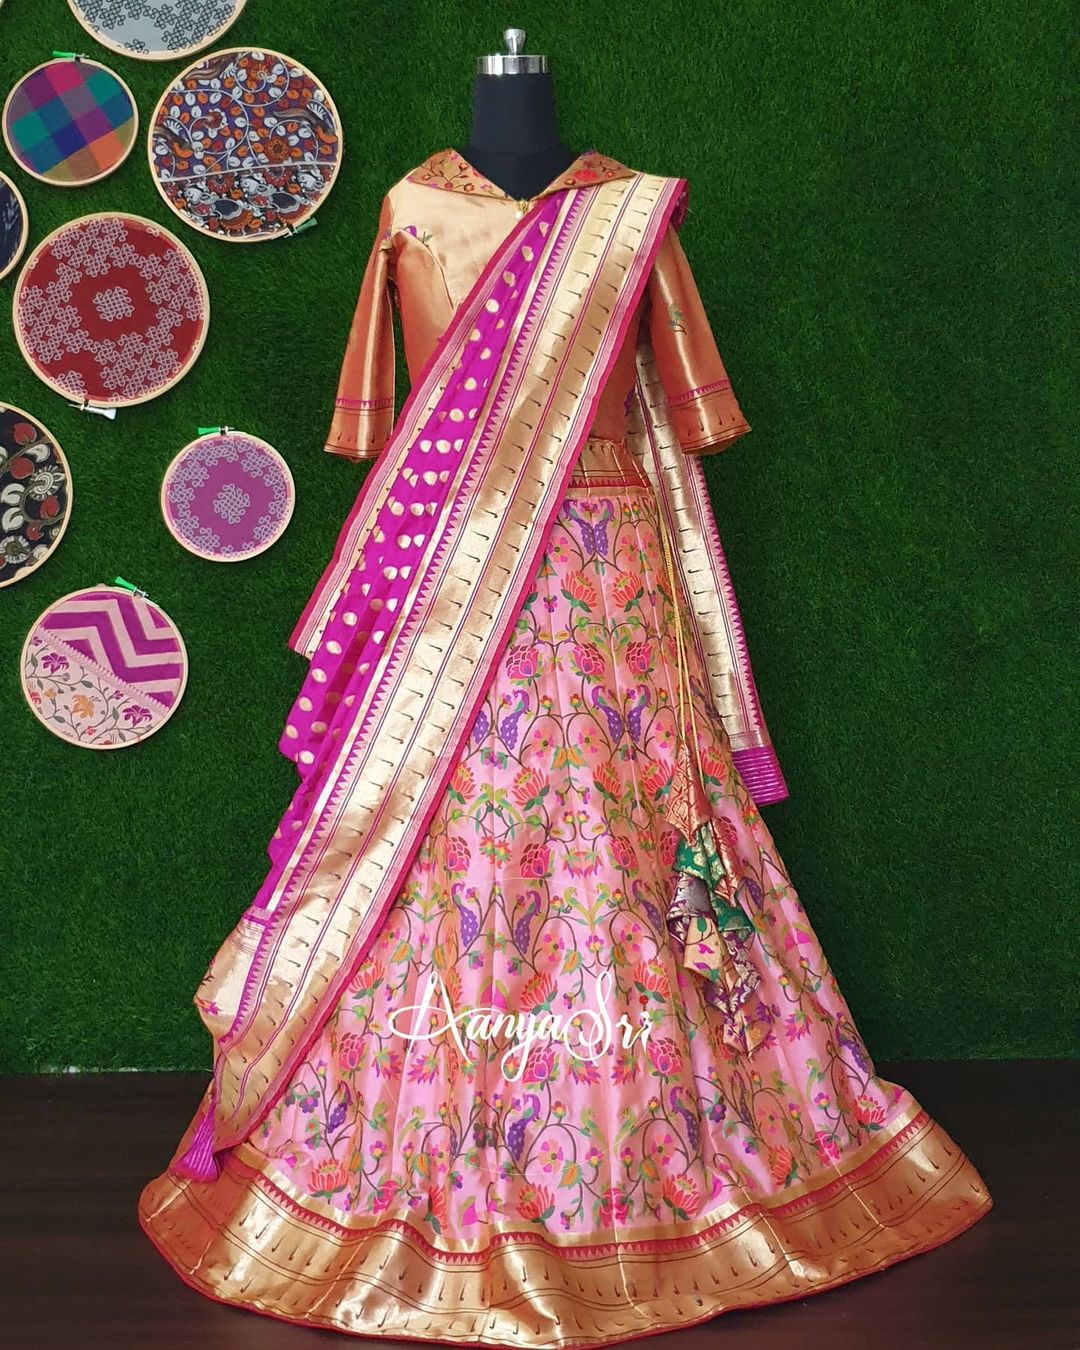 Pink Paithani.  RS. 9600/- Pink traditional paithani lehenga with gold paithani blouse and contrast purple paithani dupatta. This is perfect for weddings and looks grand and elegant !! 2021-05-25